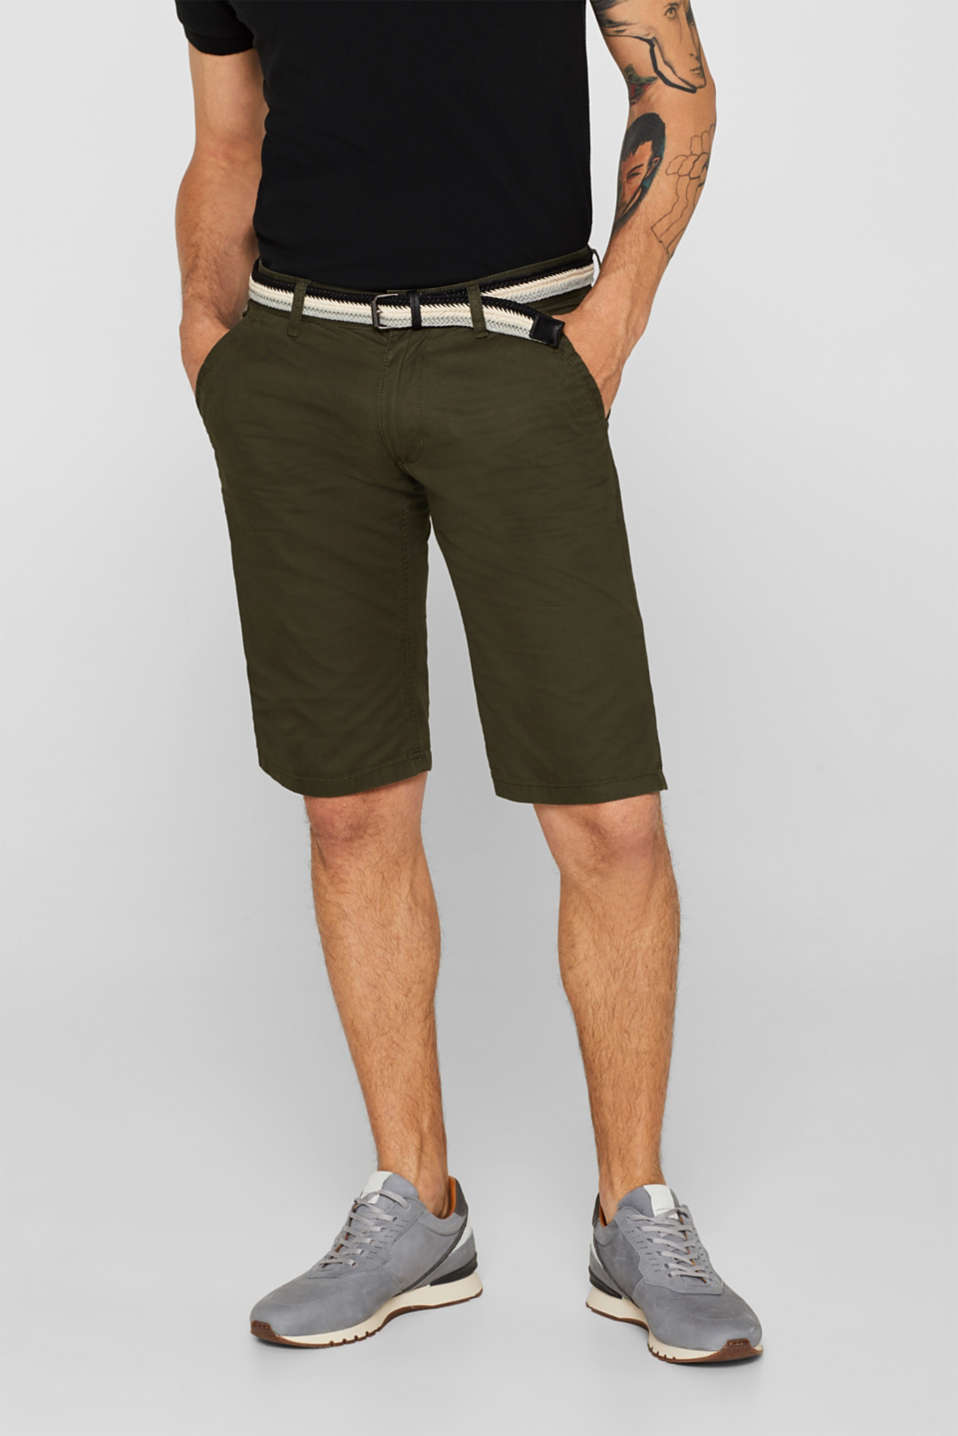 edc - 100% cotton shorts with a belt